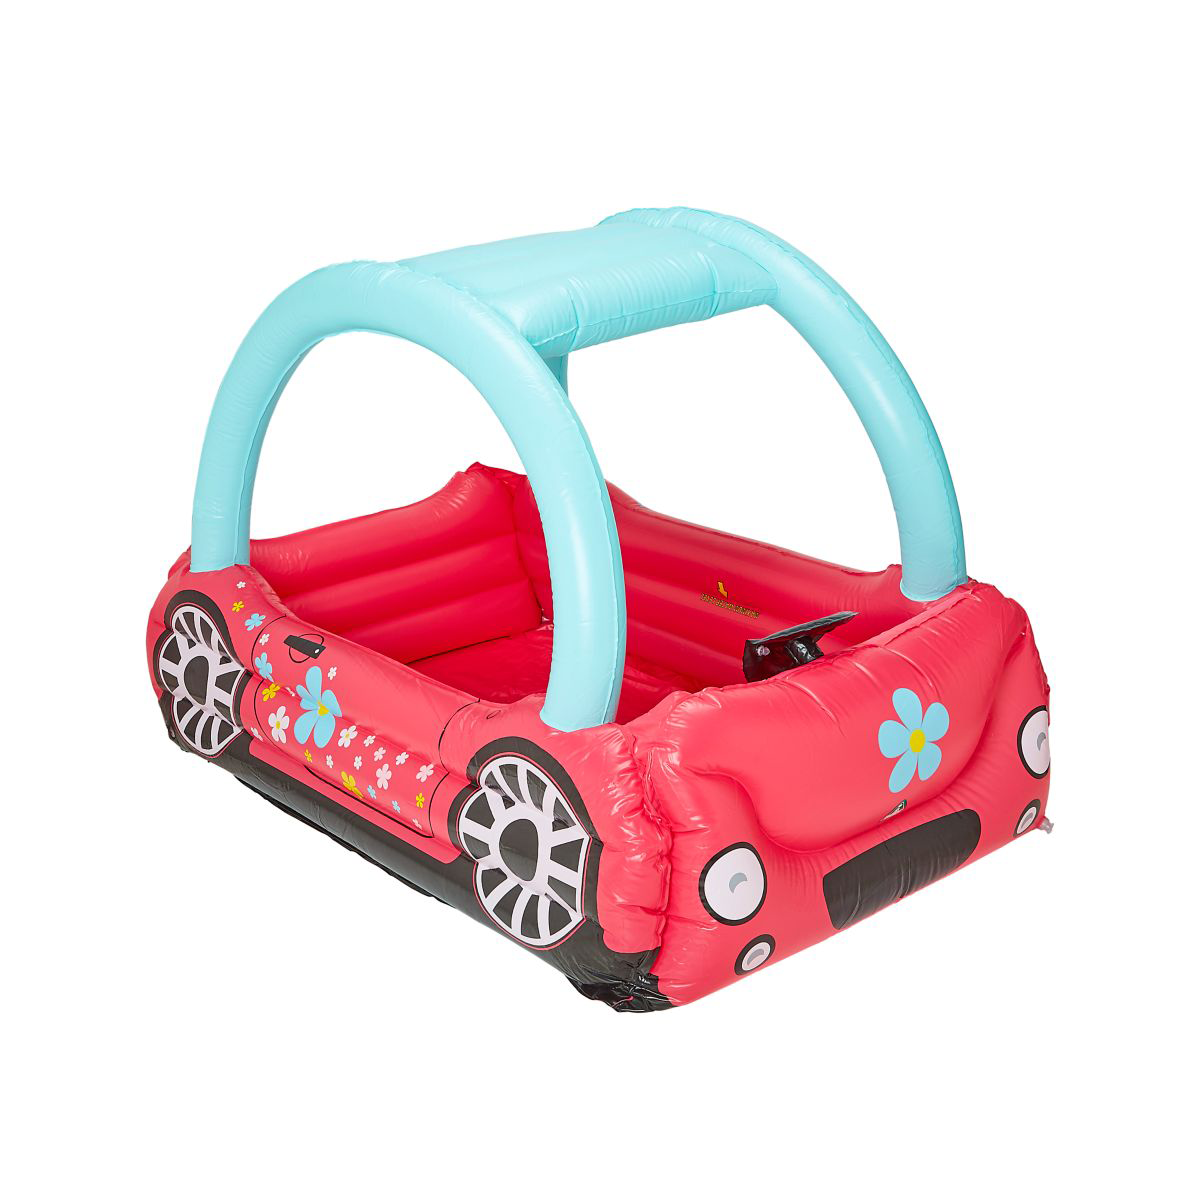 Early Learning Centre Racer Car Pool - Pink from Early Learning Center